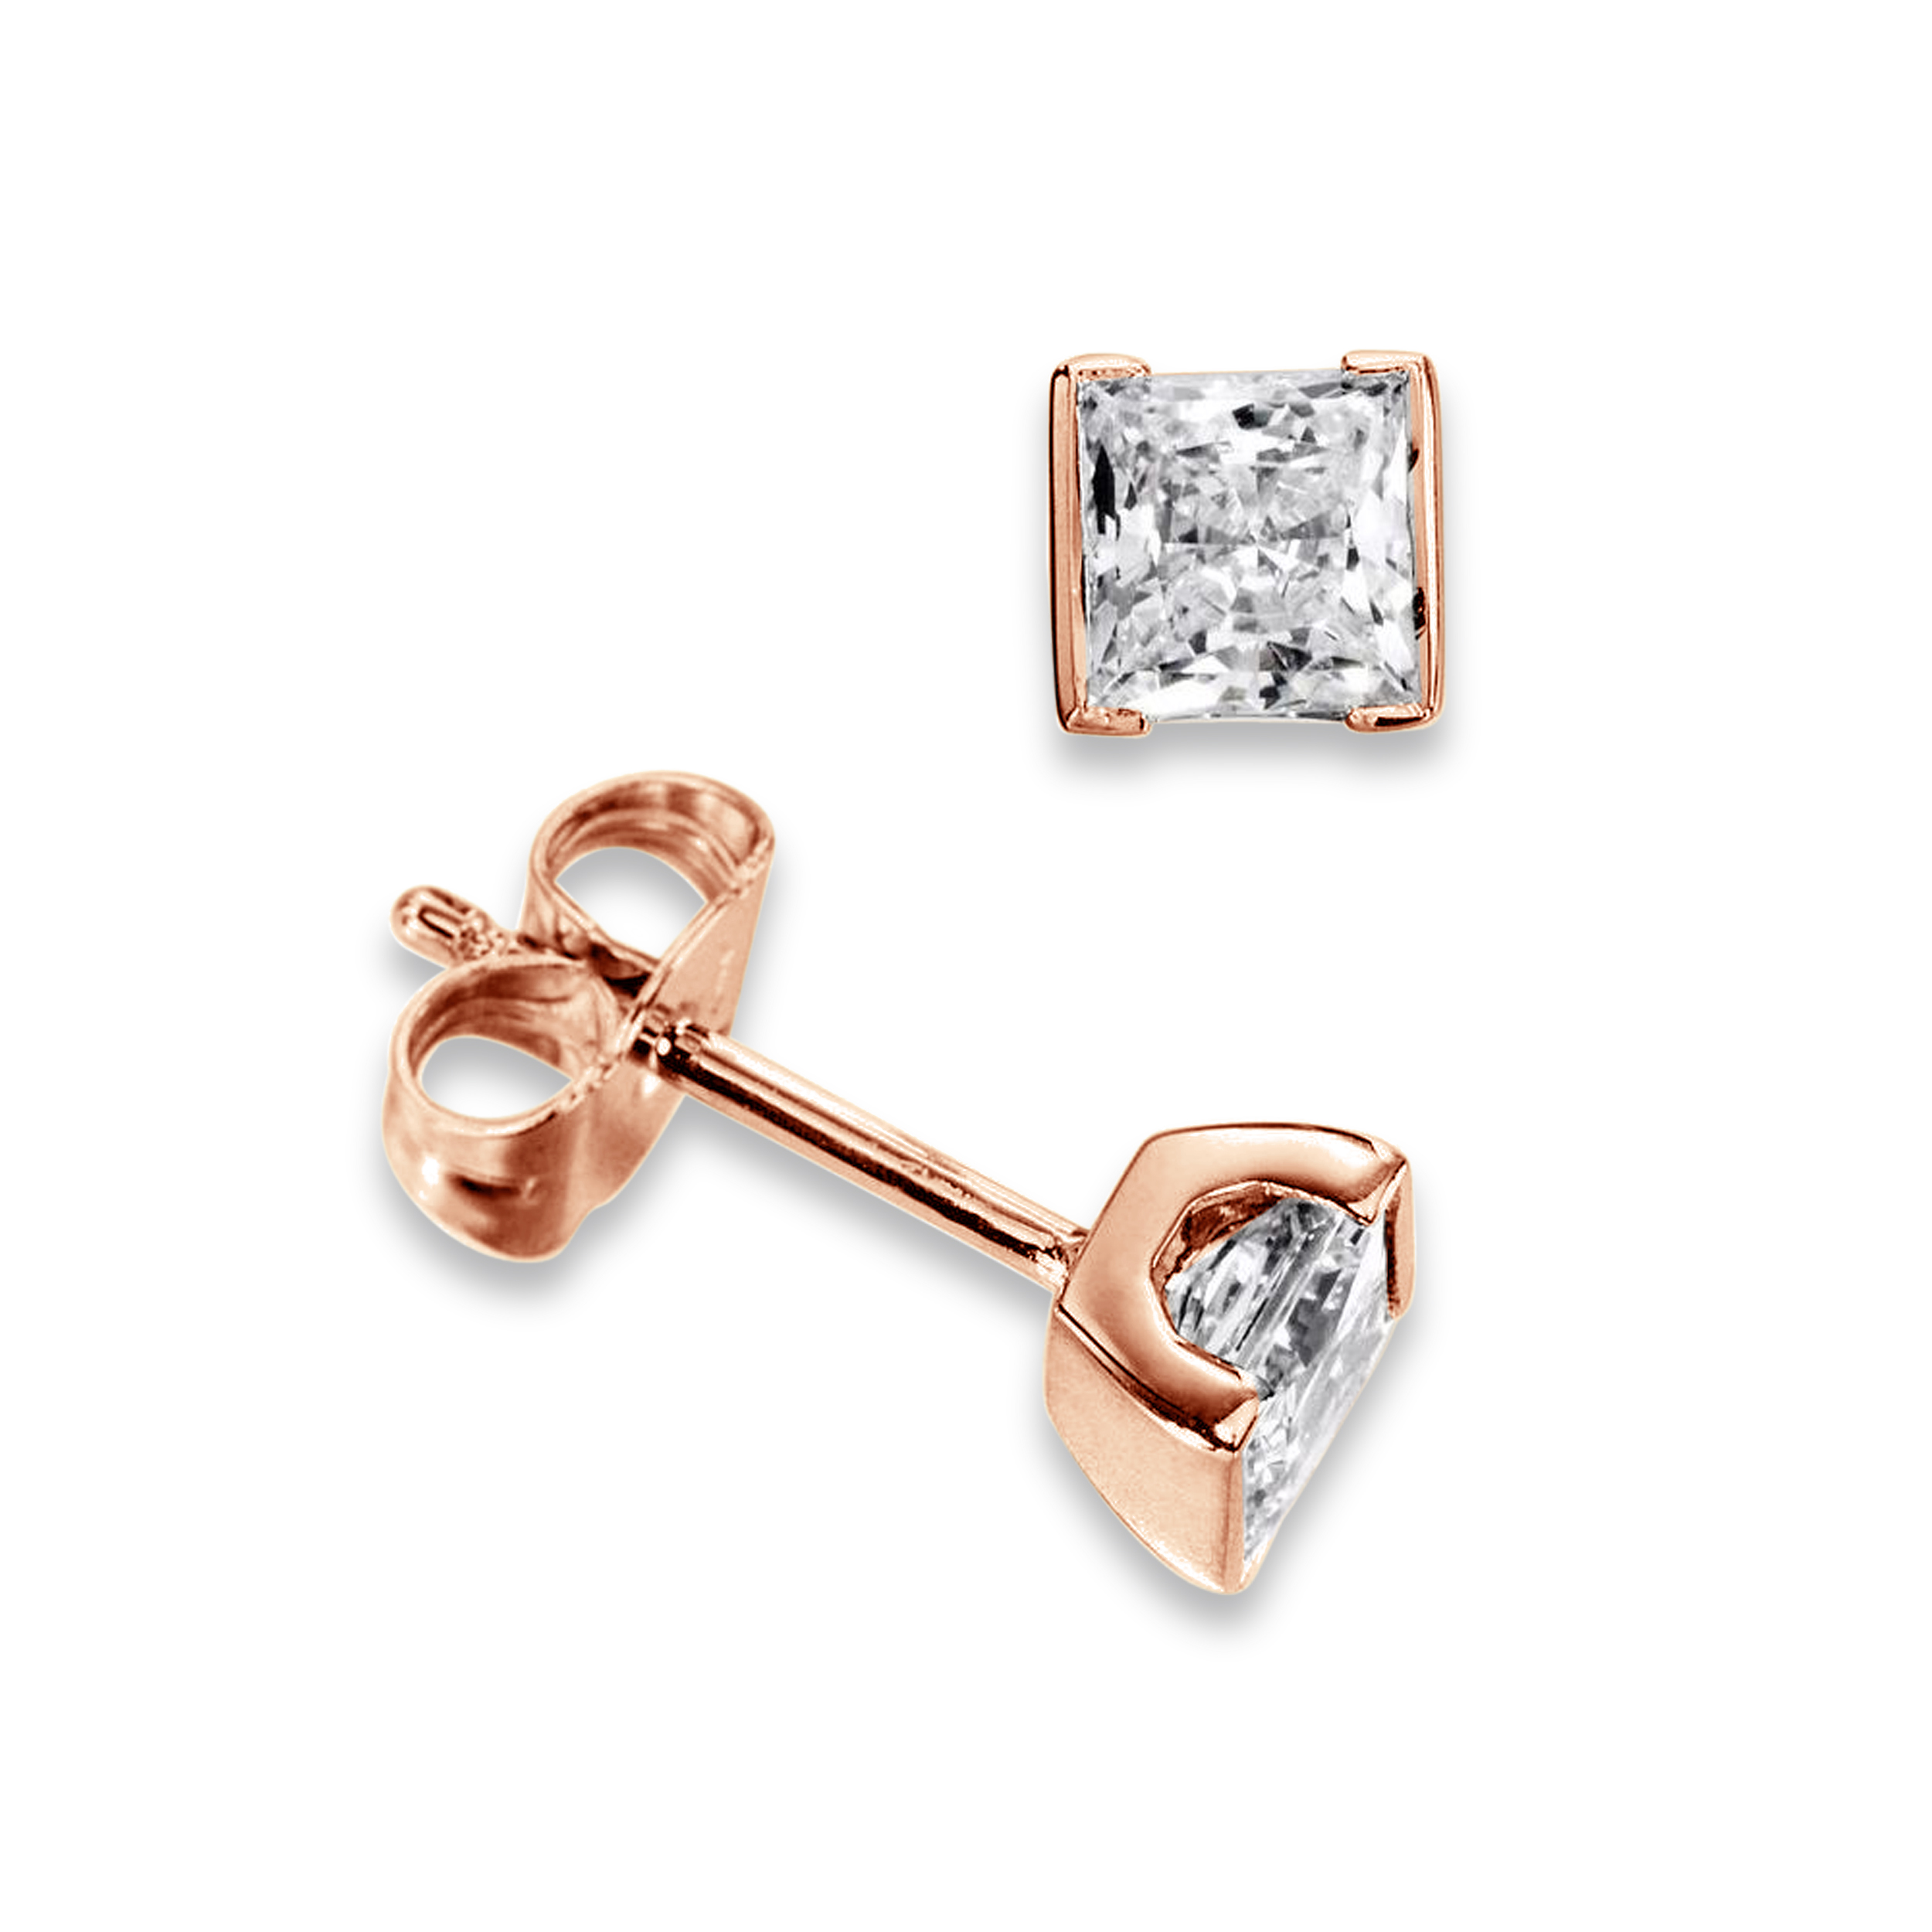 Tension Set Princess Diamond Stud Earrings for women